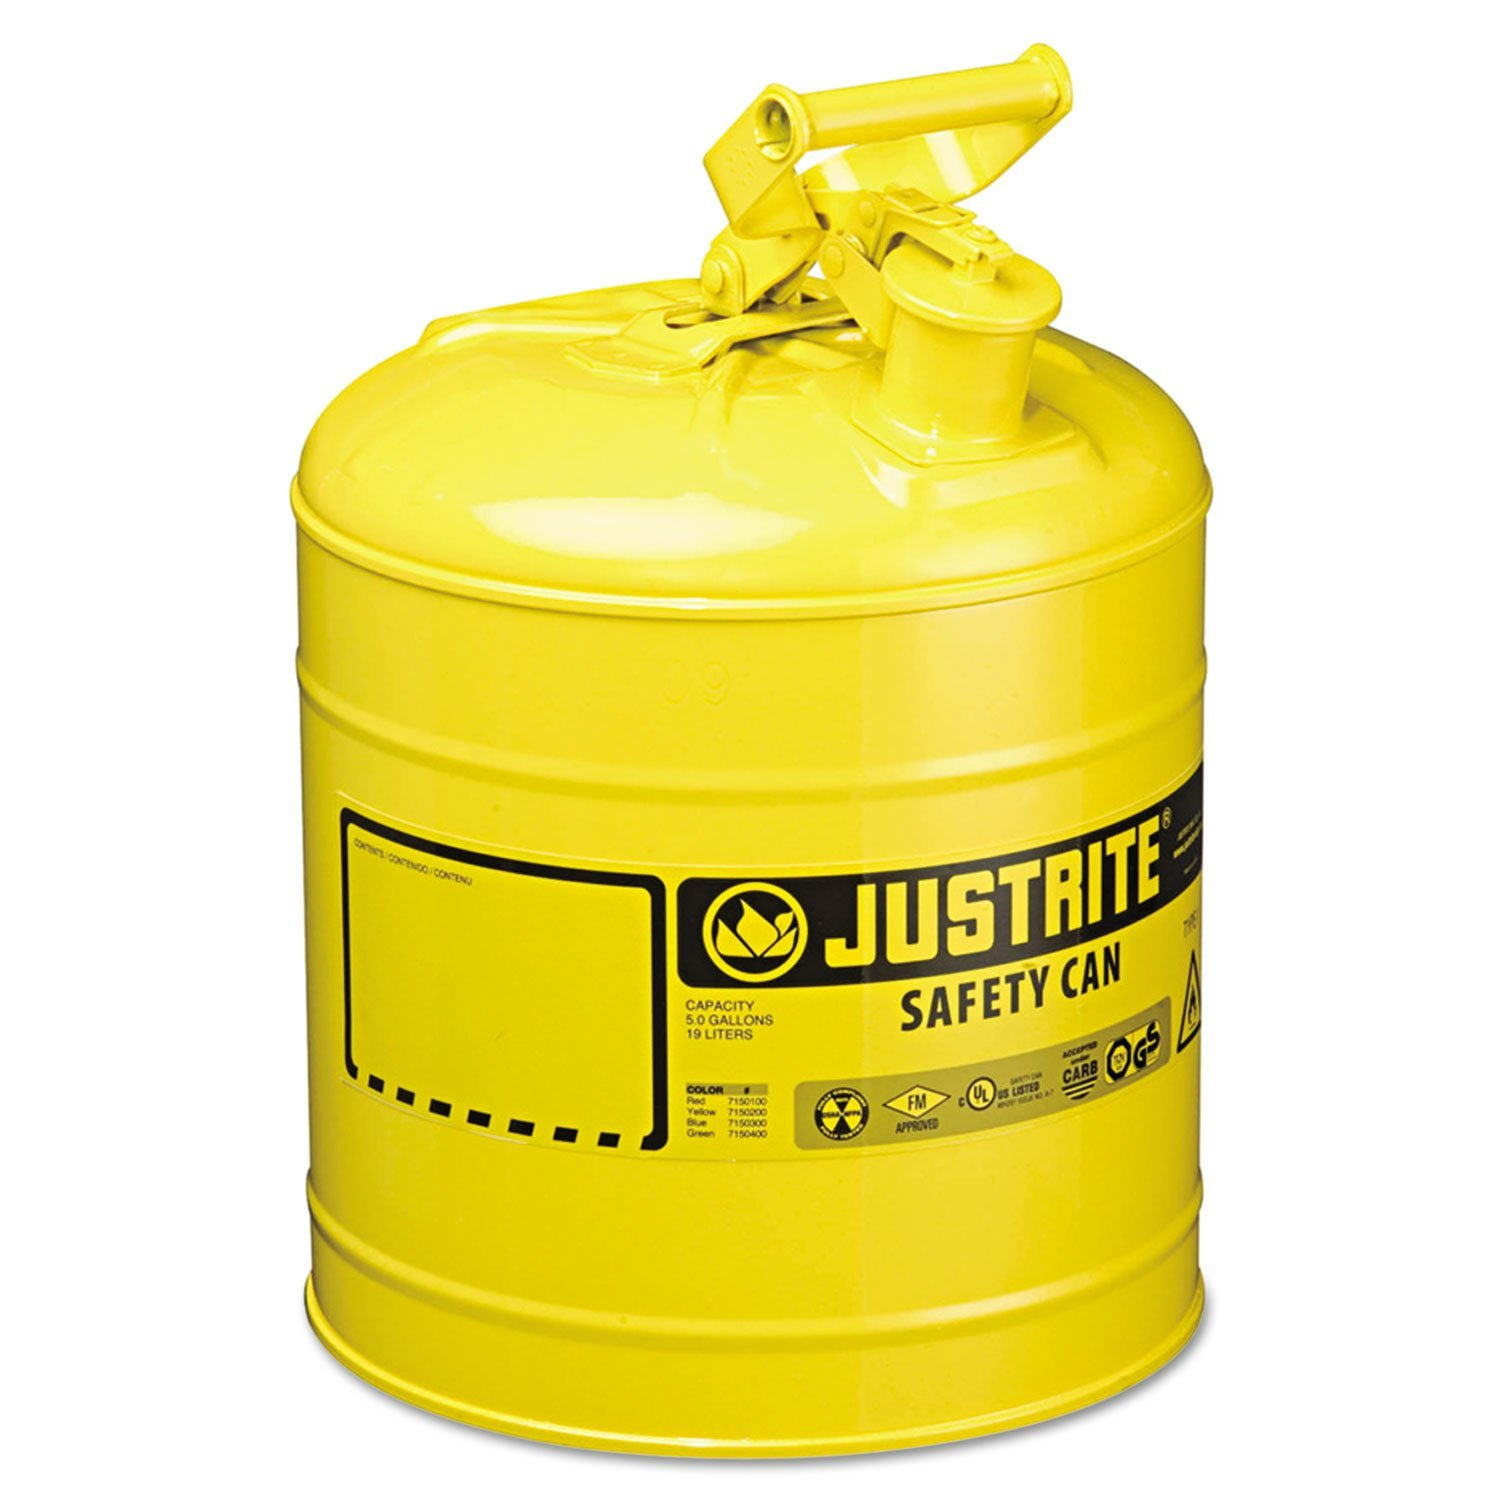 JUS7150200 - Safety Can, Manufacturer: Justrite By Justrite